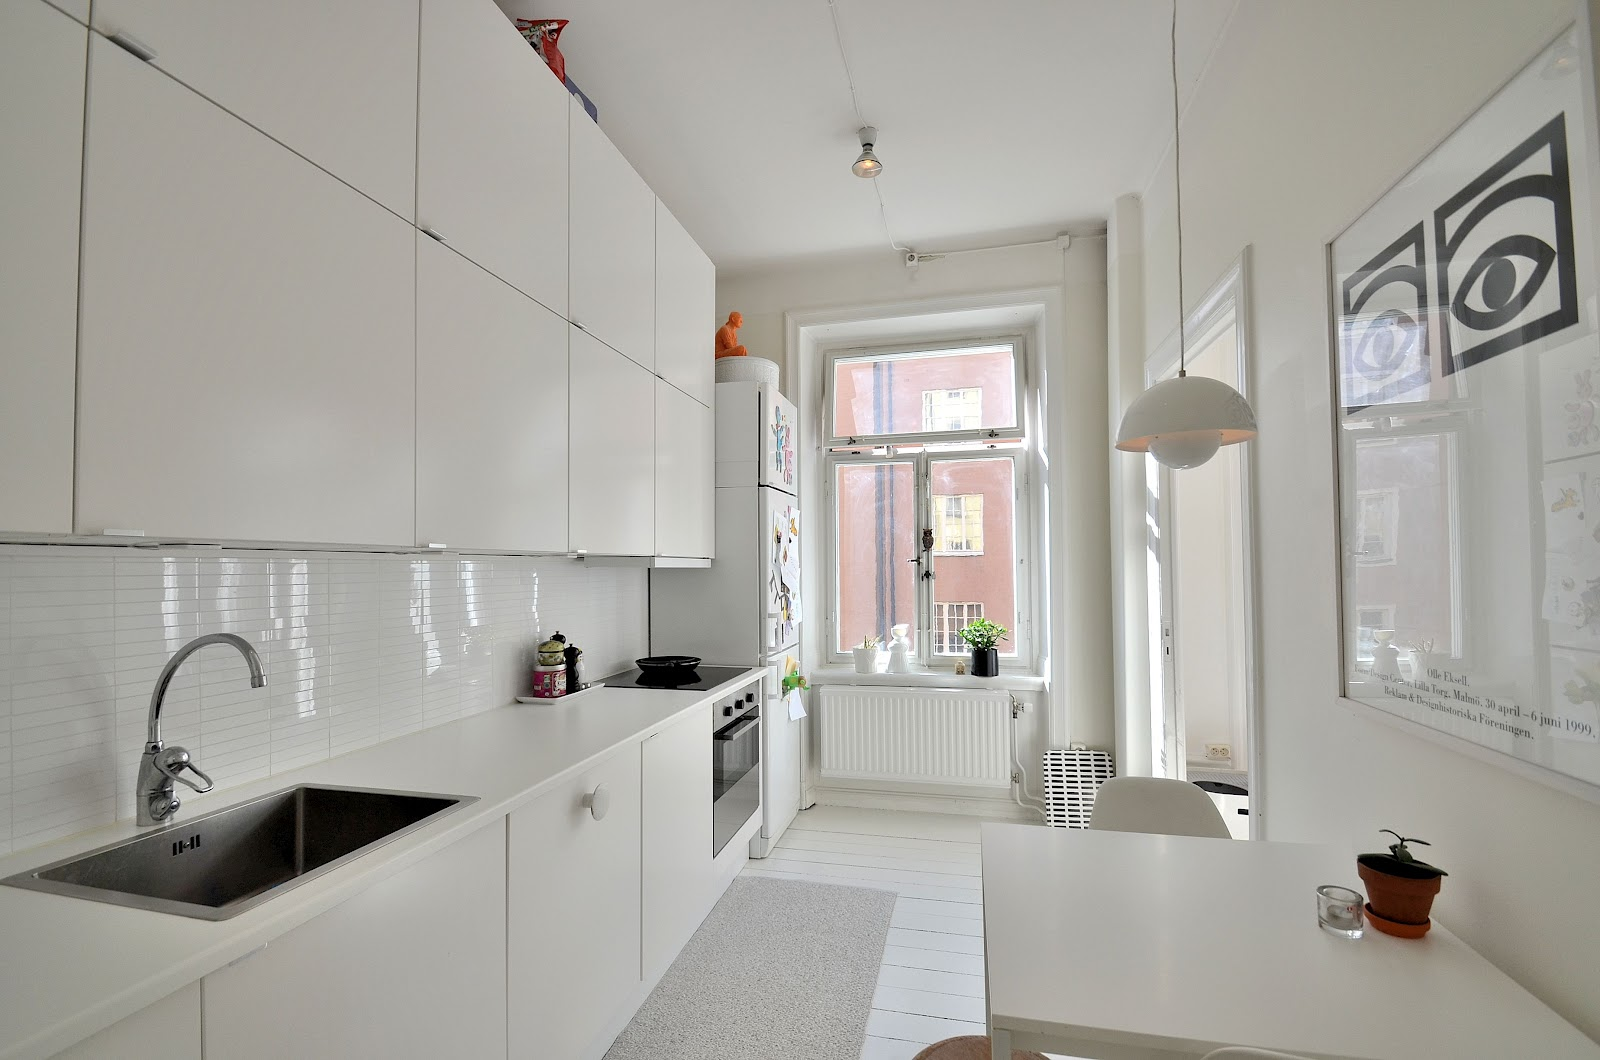 City Living Apt Blog: Scoop - Swedish design apt rental in ...